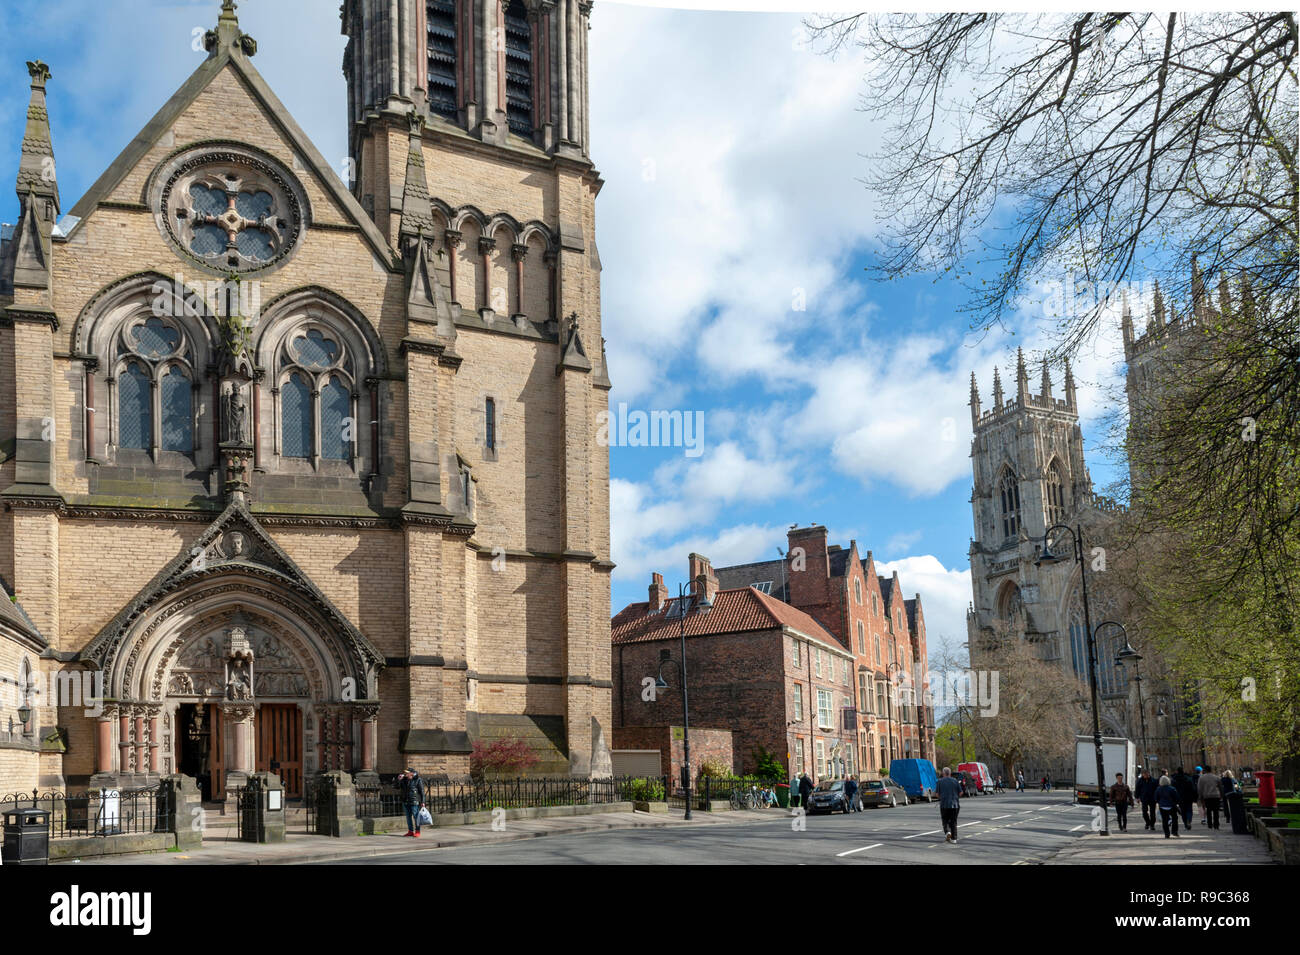 Historic building built in Gothic Revival style of Catholic Church of St Wilfrid aka Mother Church of the city of York, England, UK - Stock Image